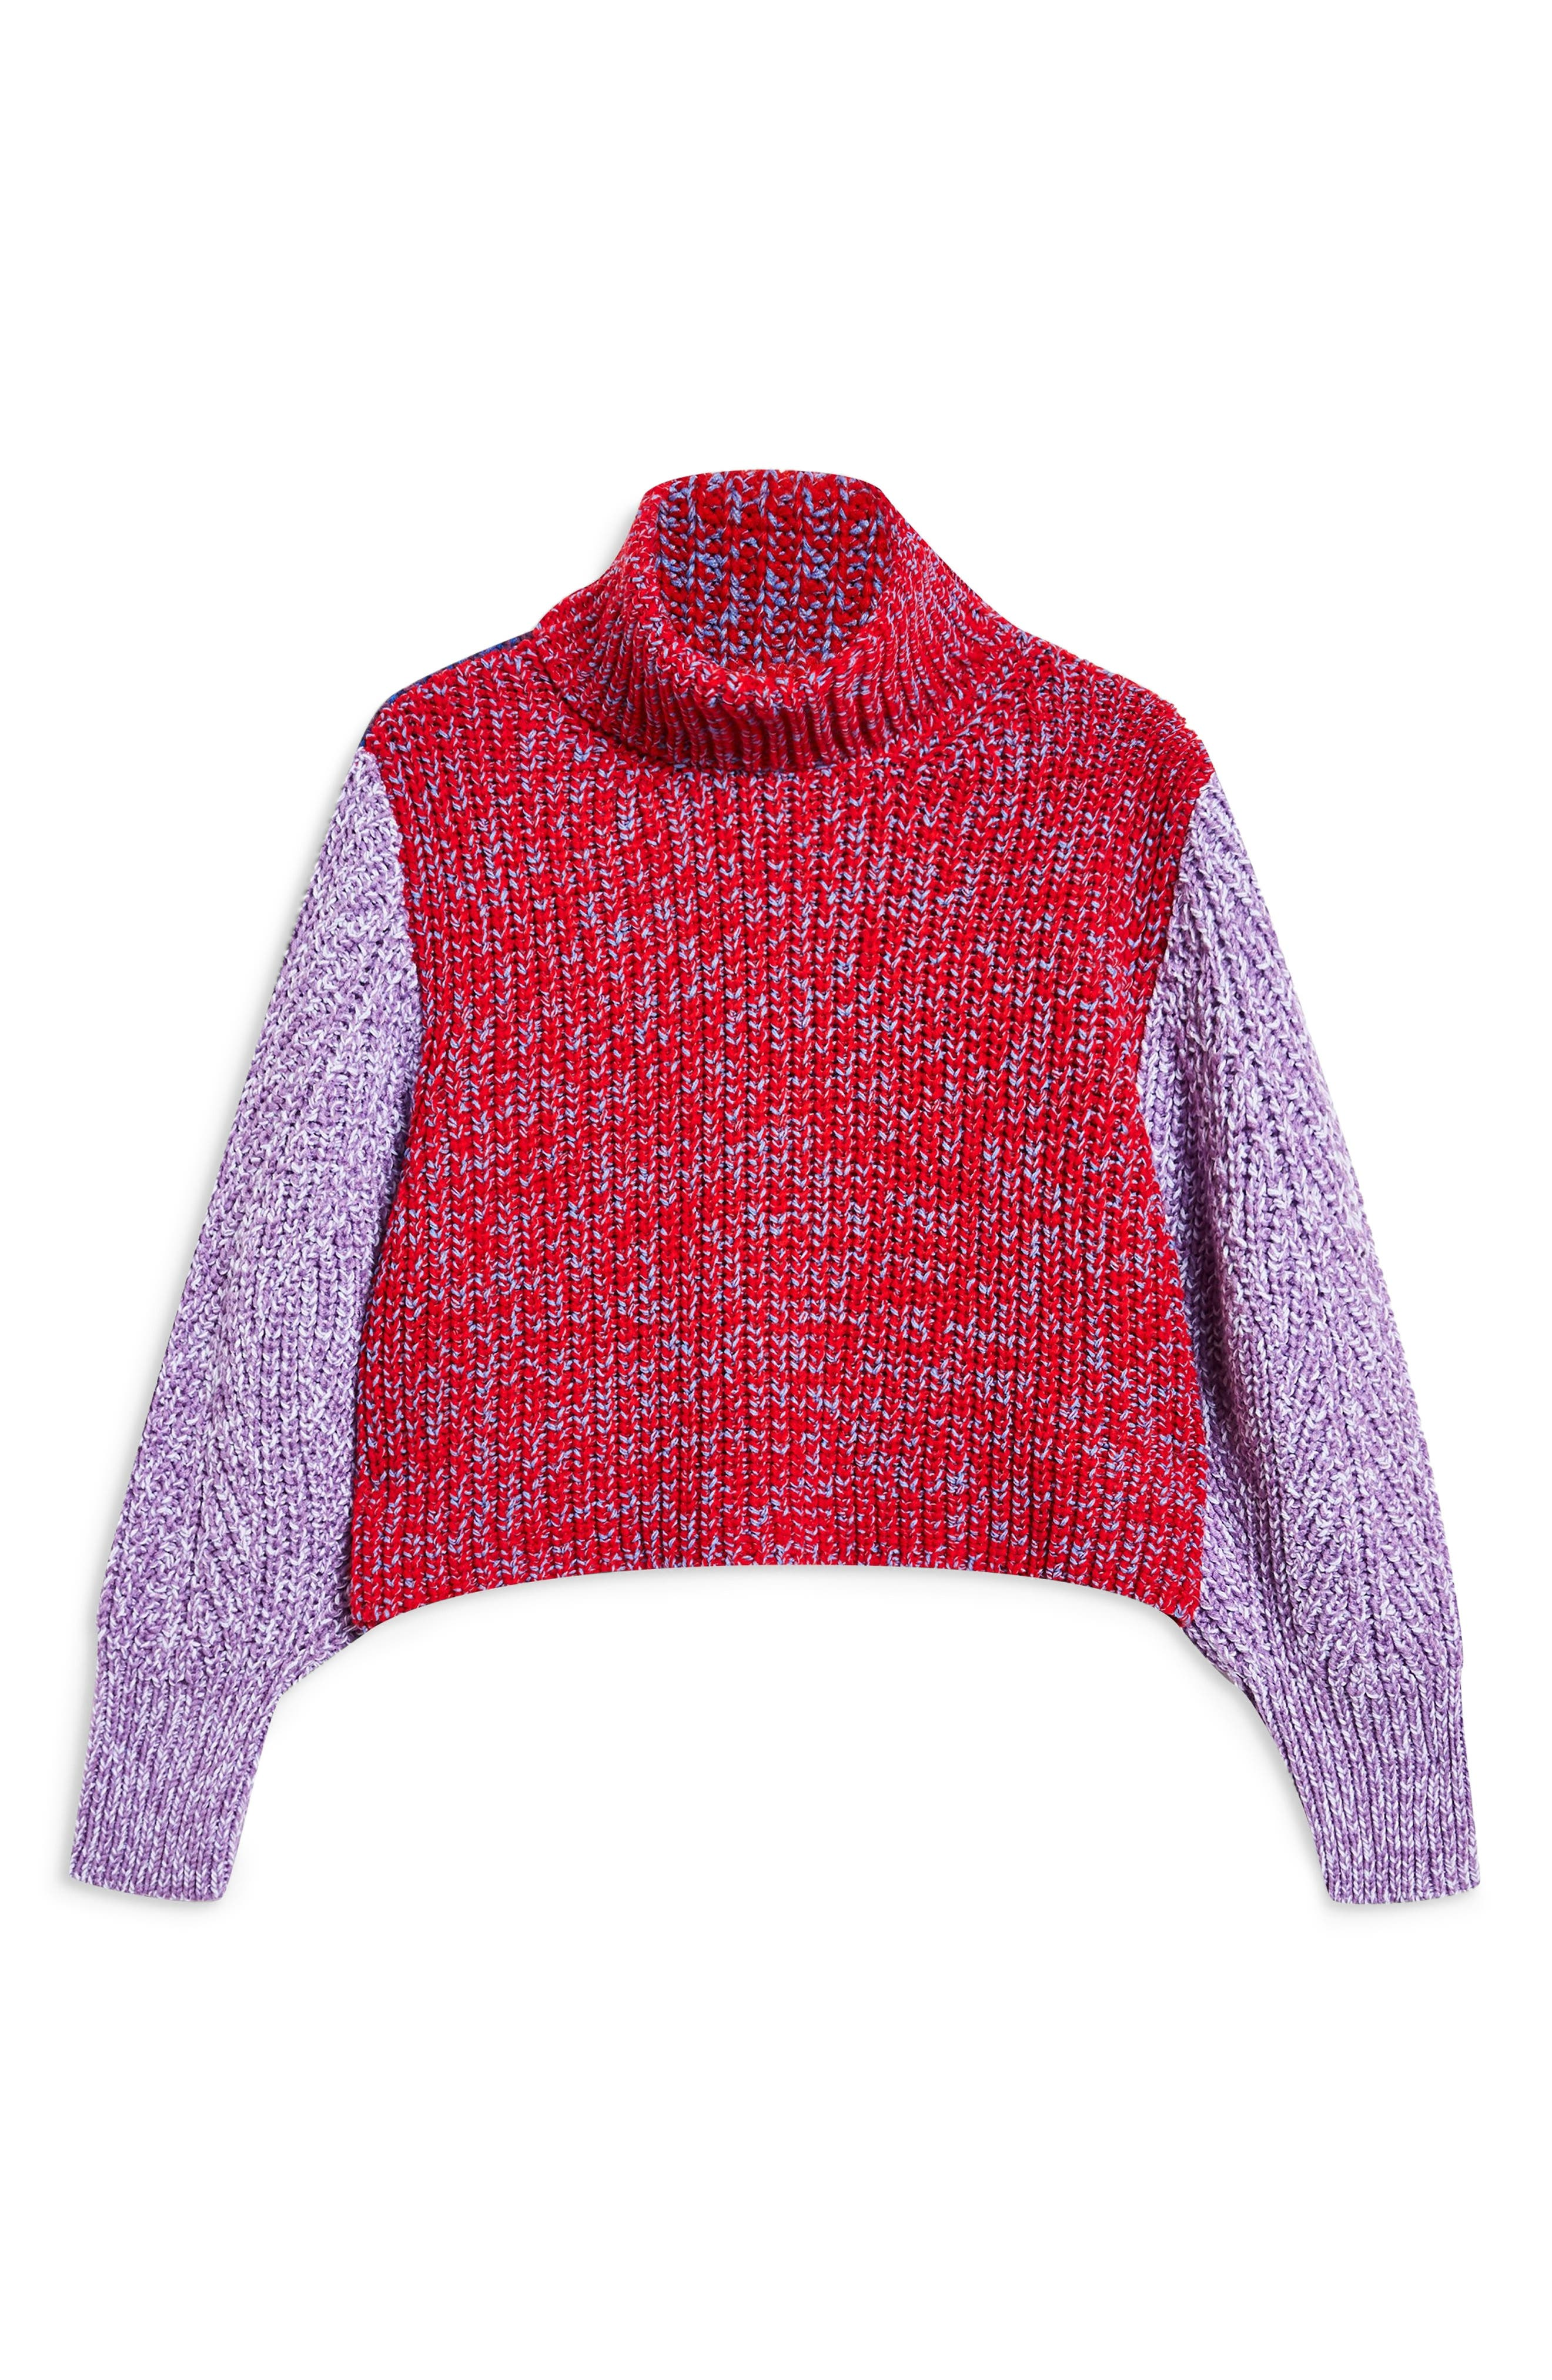 TOPSHOP,                             Three Color Roll Neck Sweater,                             Alternate thumbnail 3, color,                             RED MULTI